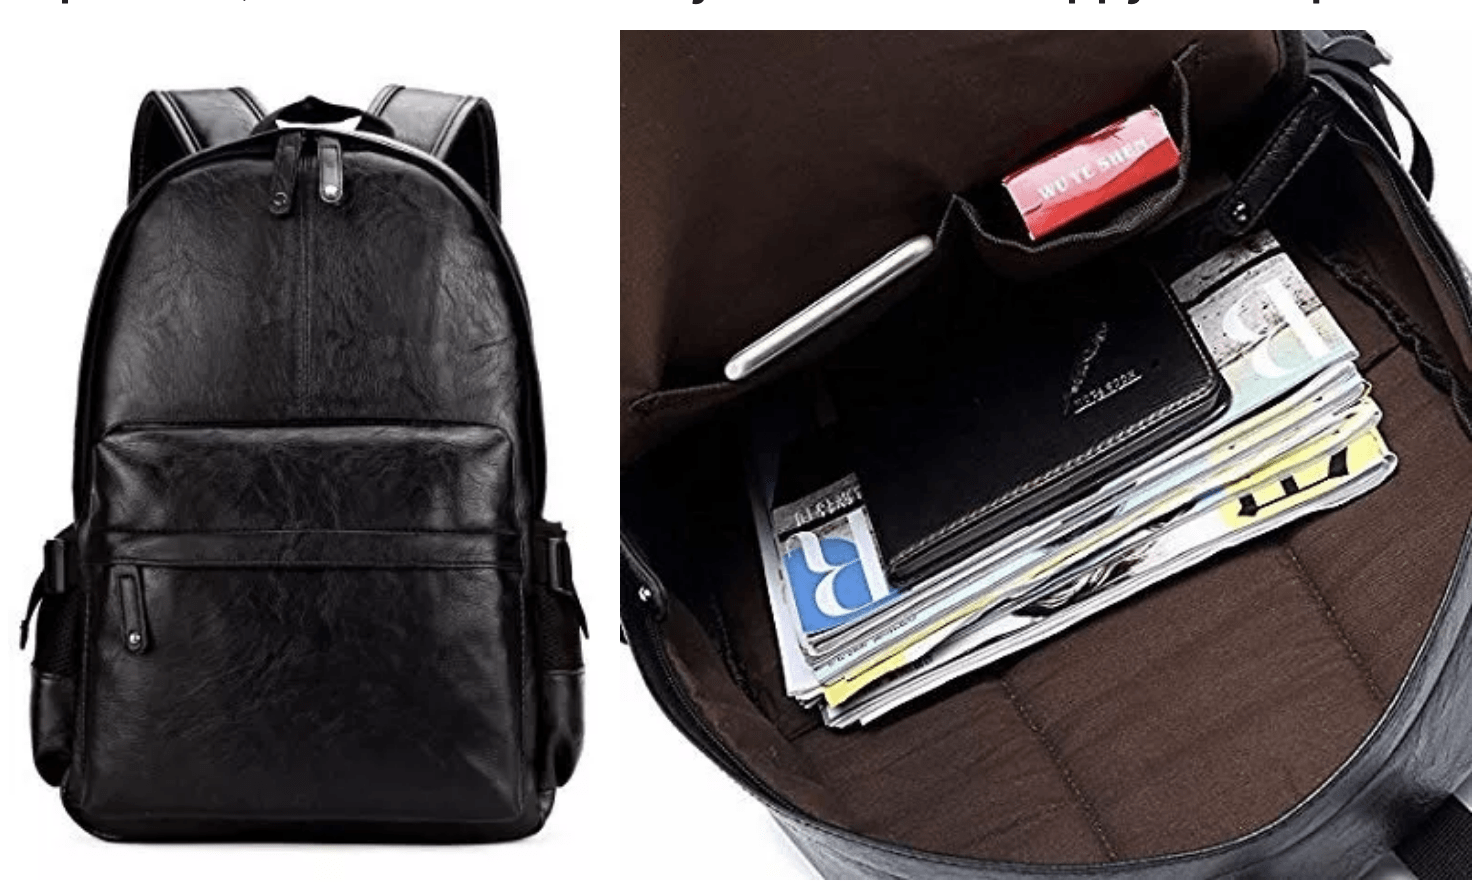 [Image description: Faux black leather backpack both closed and open, revealing contents, against a white background.] Via Amazon.